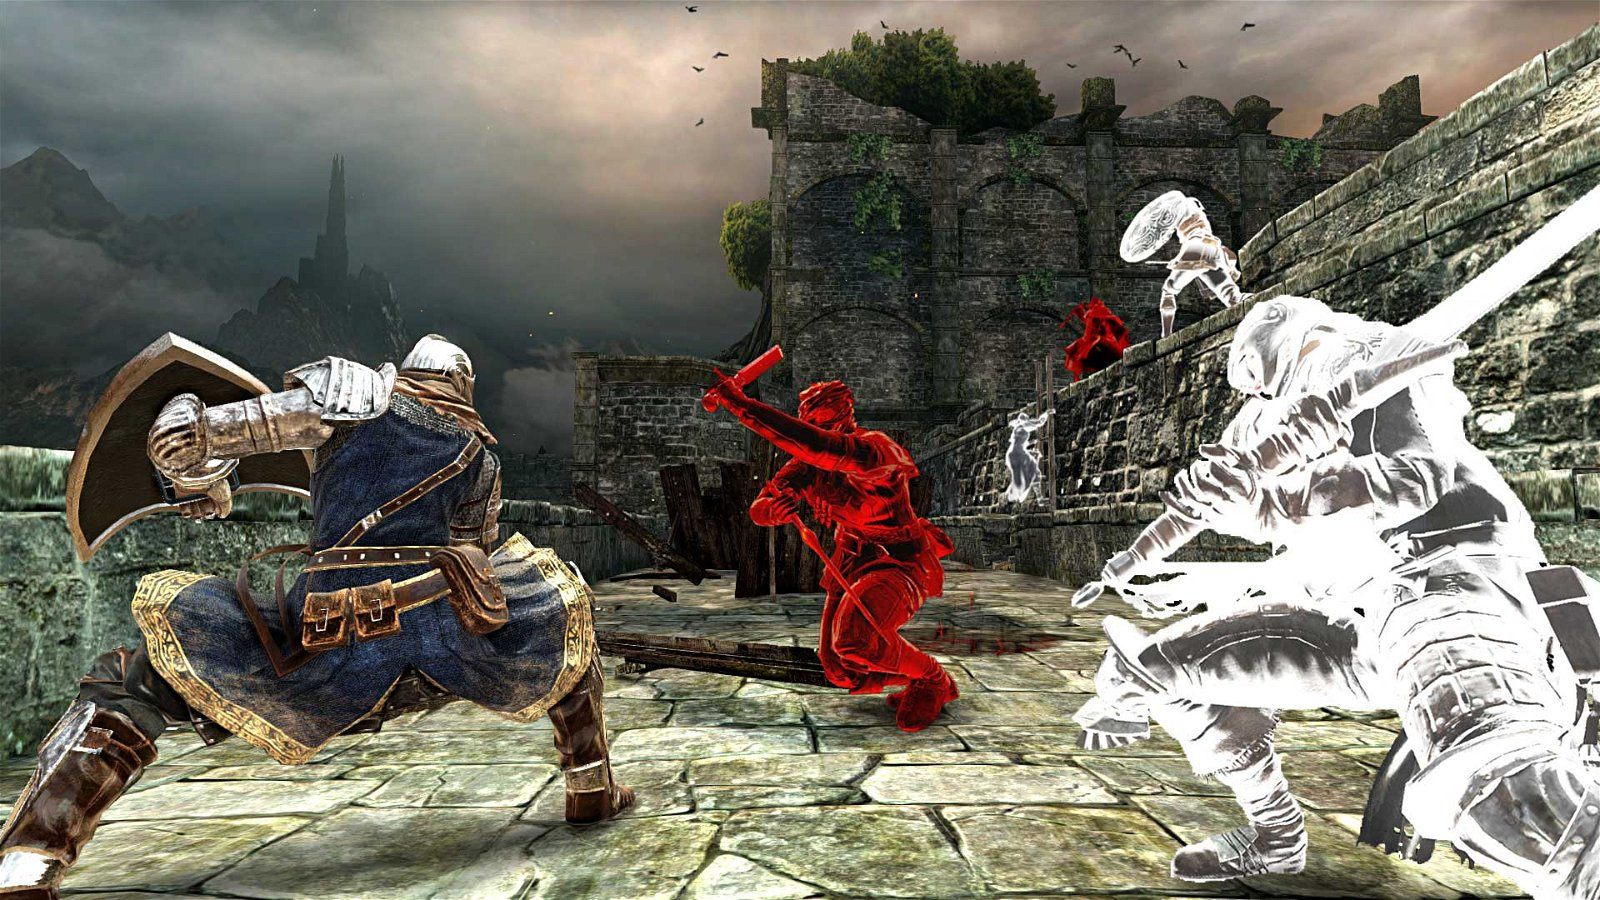 Dark Souls Ii Final Review The Trouble With Sequels: Dark Souls 2: Scholar Of The First Sin PS4 Review